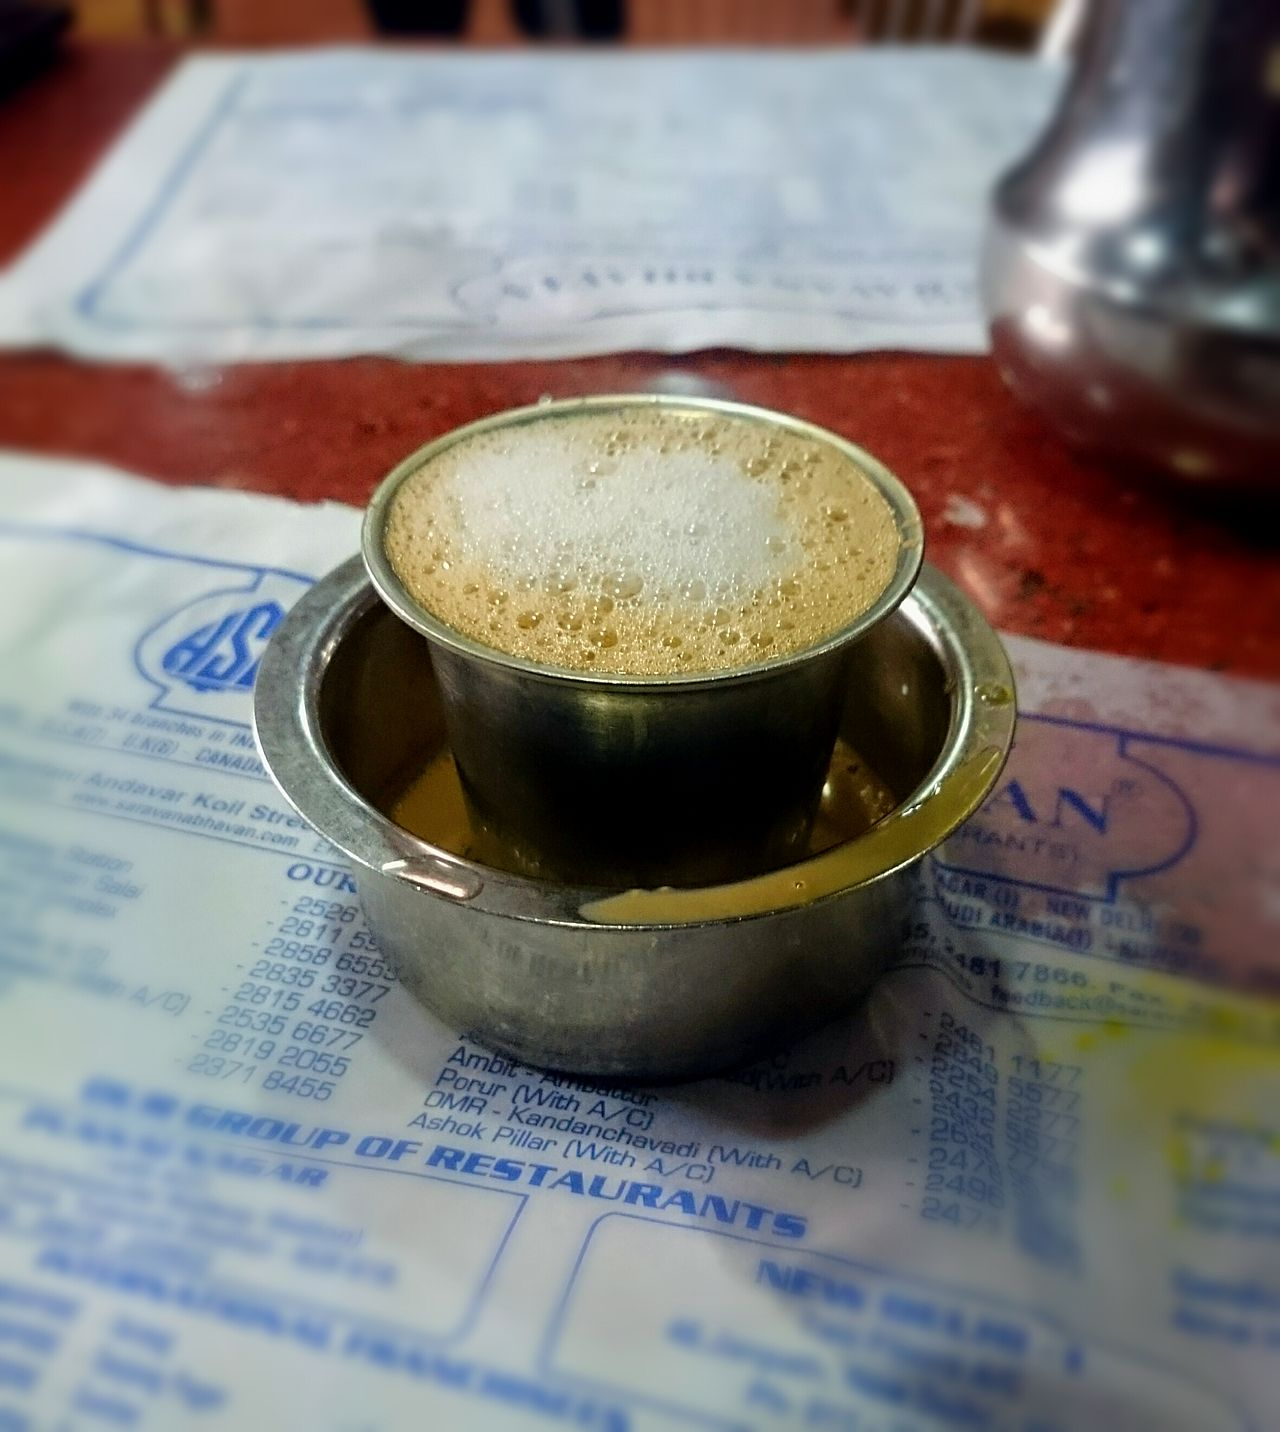 Filter Coffee from Saravana Bhavan